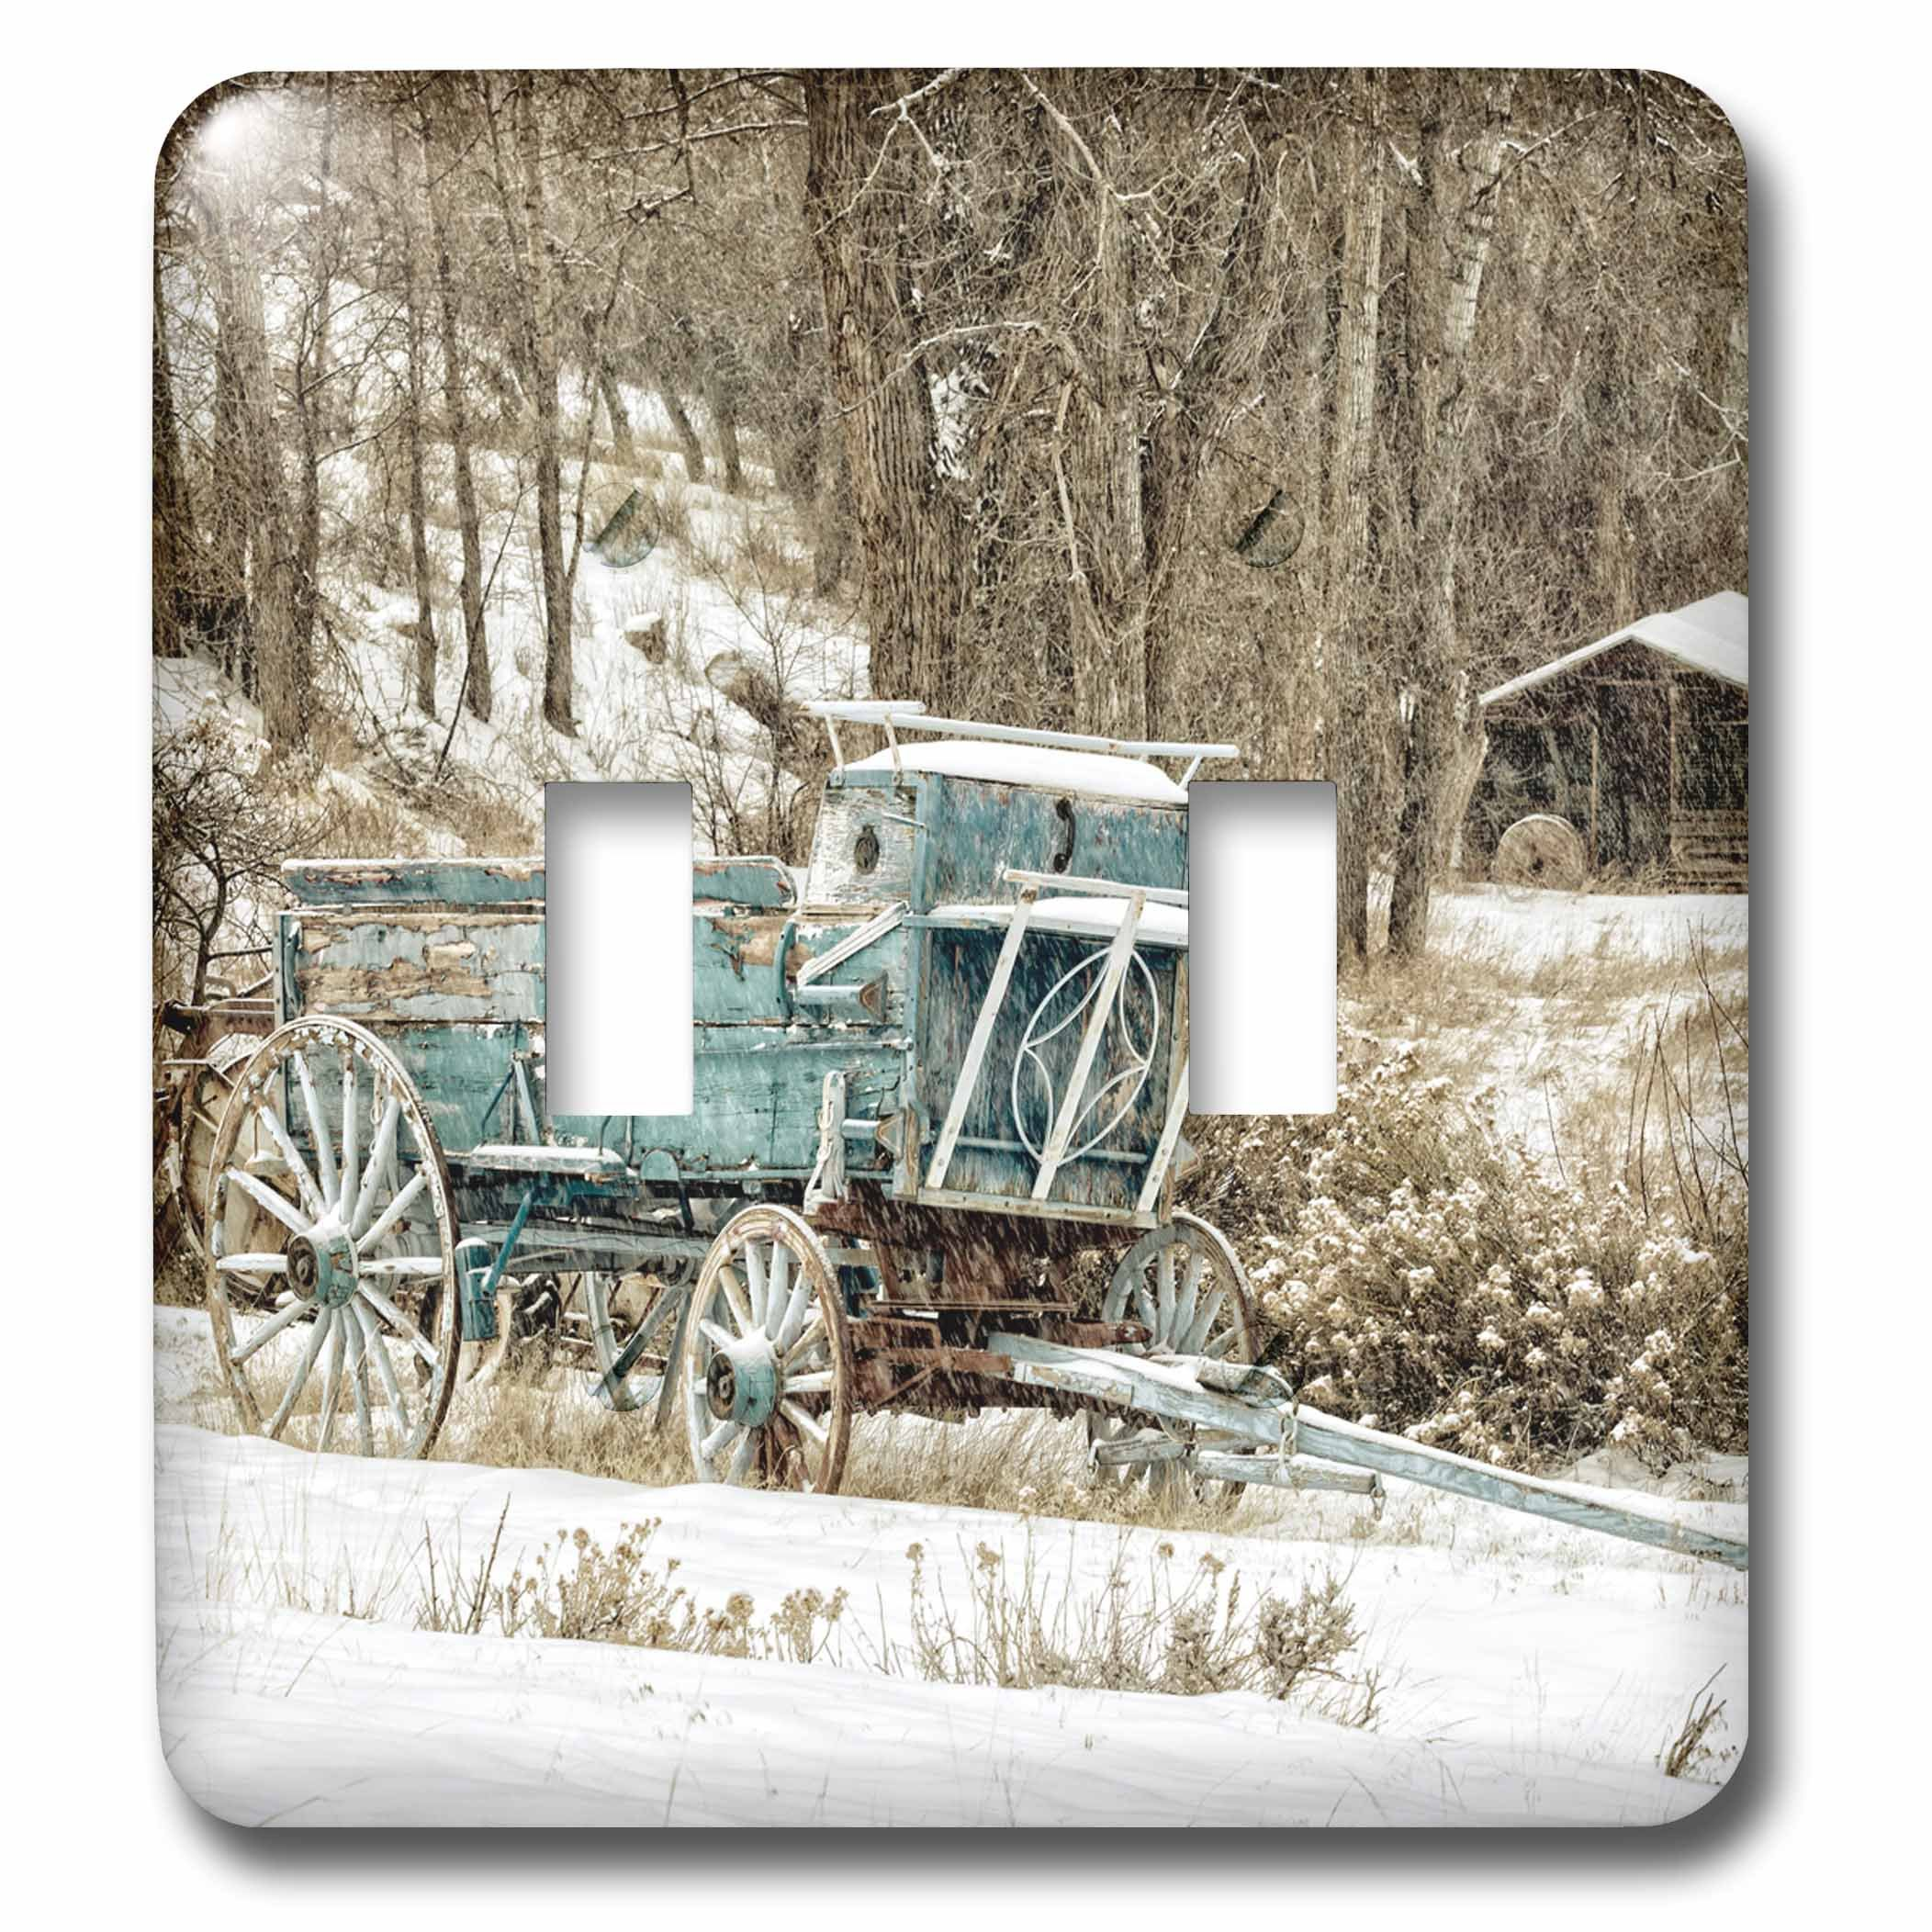 3dRose Danita Delimont - Western - USA, Wyoming, Shell, Blue Wagon in Snow - Light Switch Covers - double toggle switch (lsp_279819_2)